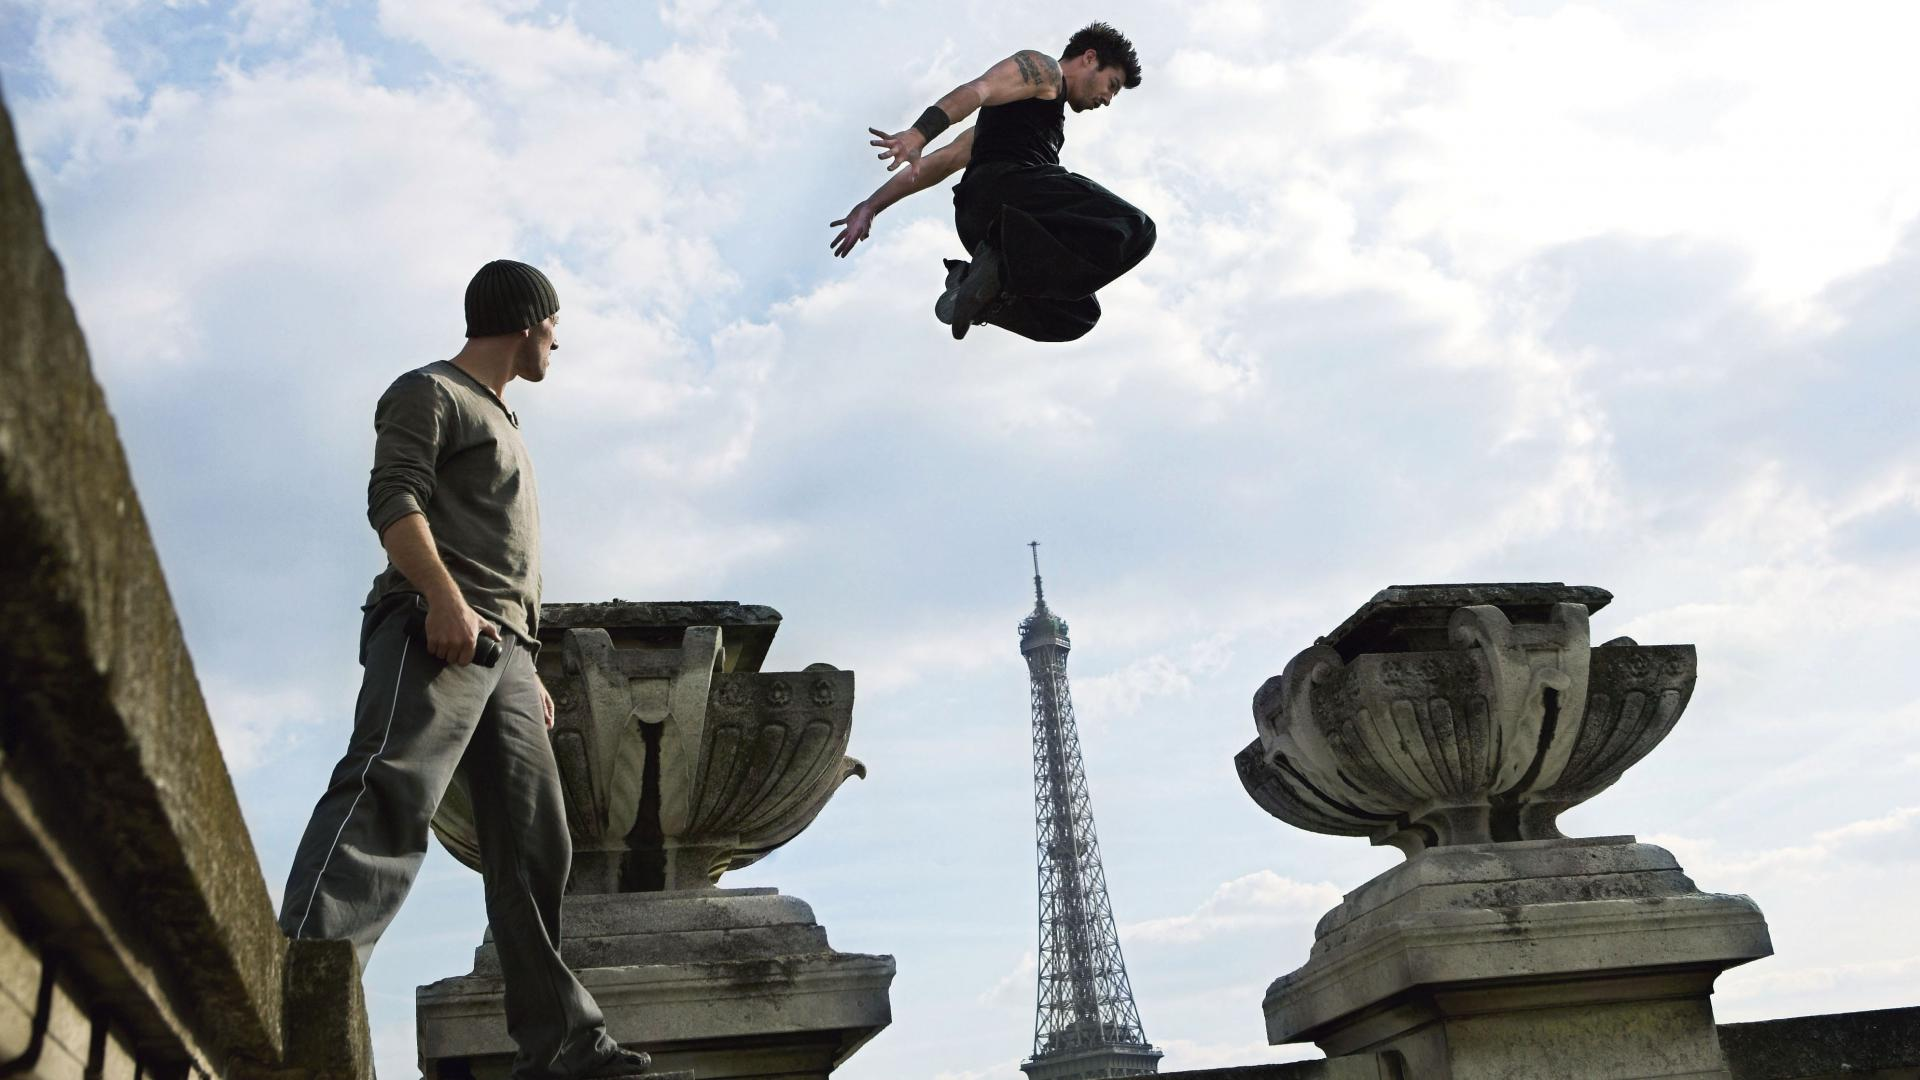 Jump free running david belle cyril raffaelli wallpaper | (77163)